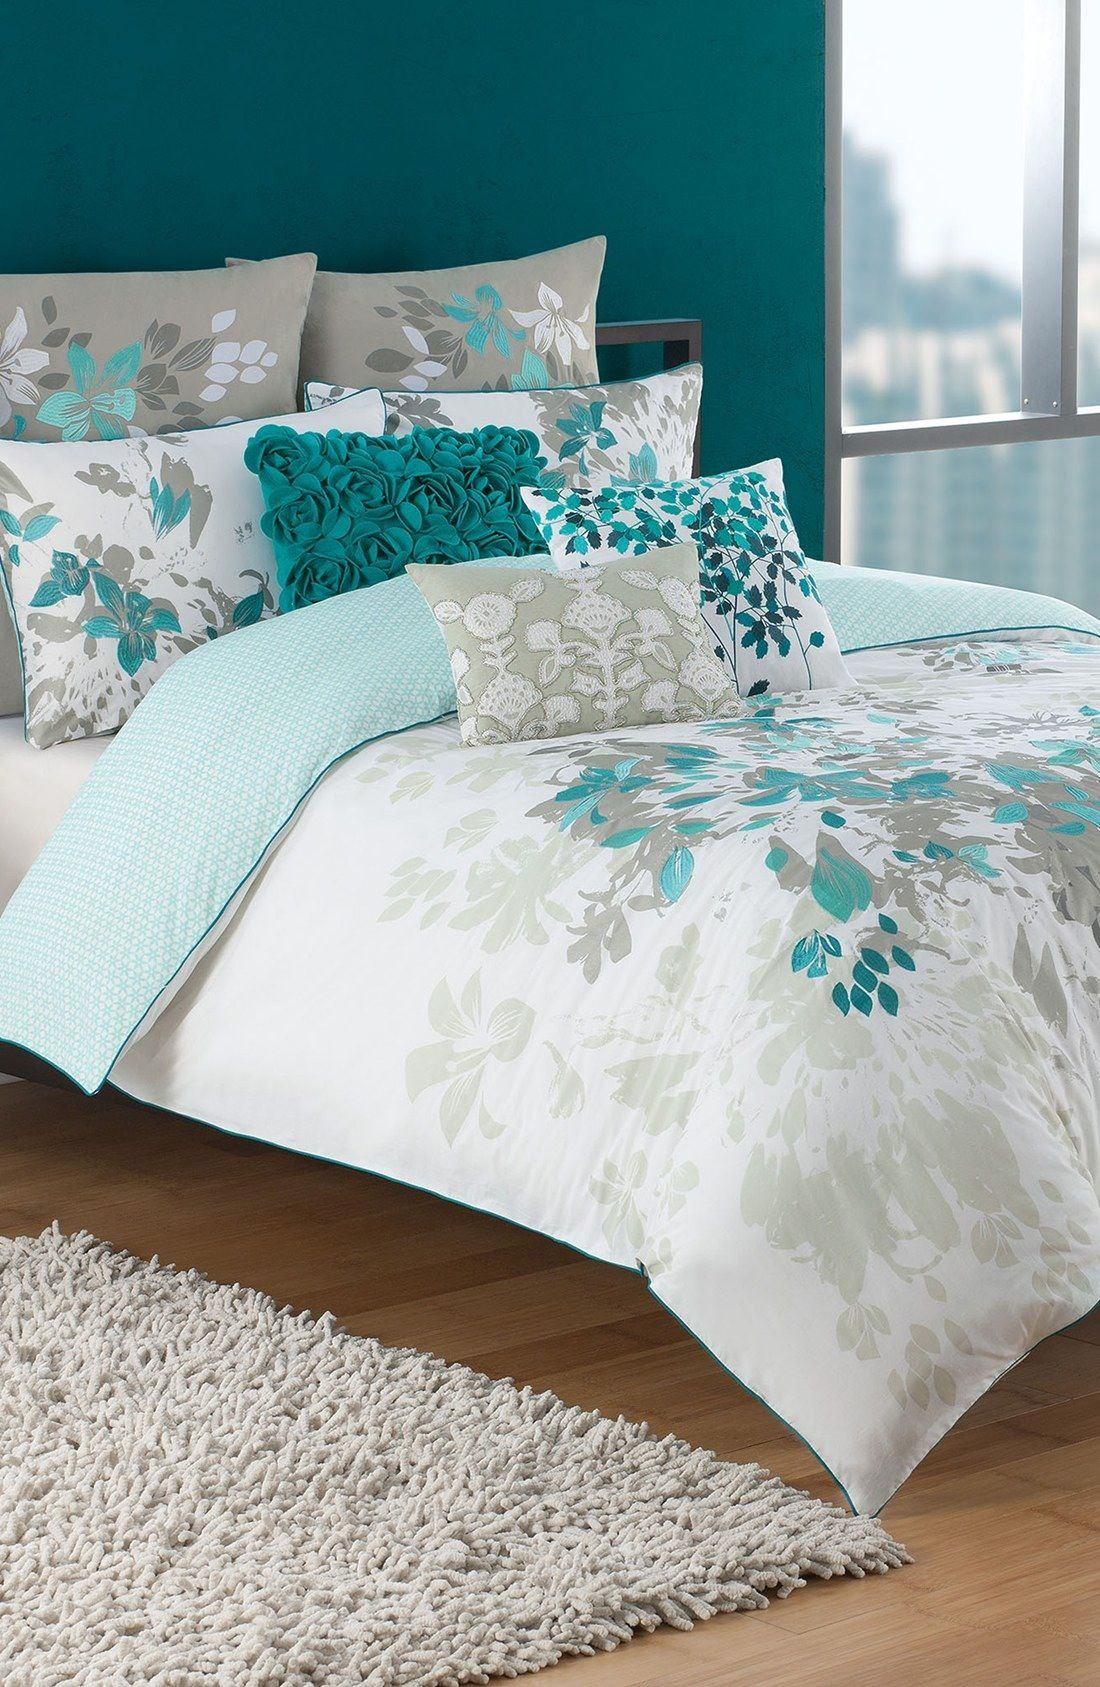 leopard comforter teen aqua comforters full bed pillow home bedspread girls damask adorable shams style bedding wl white throw amazon com queen dp blue black set teal